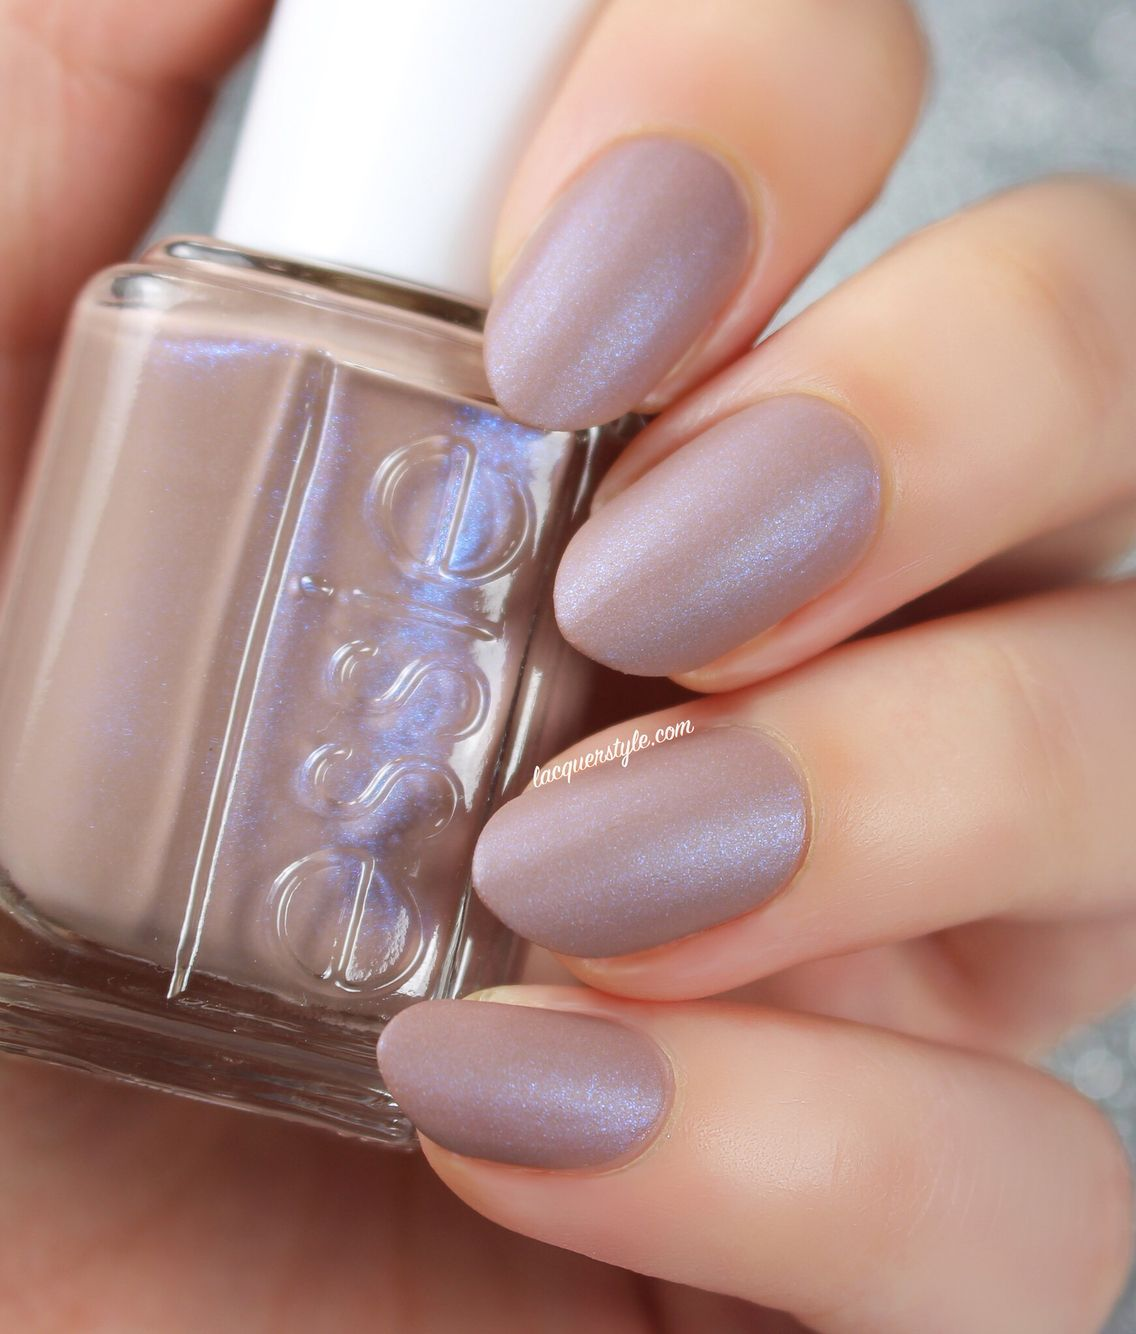 Pin by Meropi Adamopoulou on nails | Pinterest | Cashmere, Comfy and ...